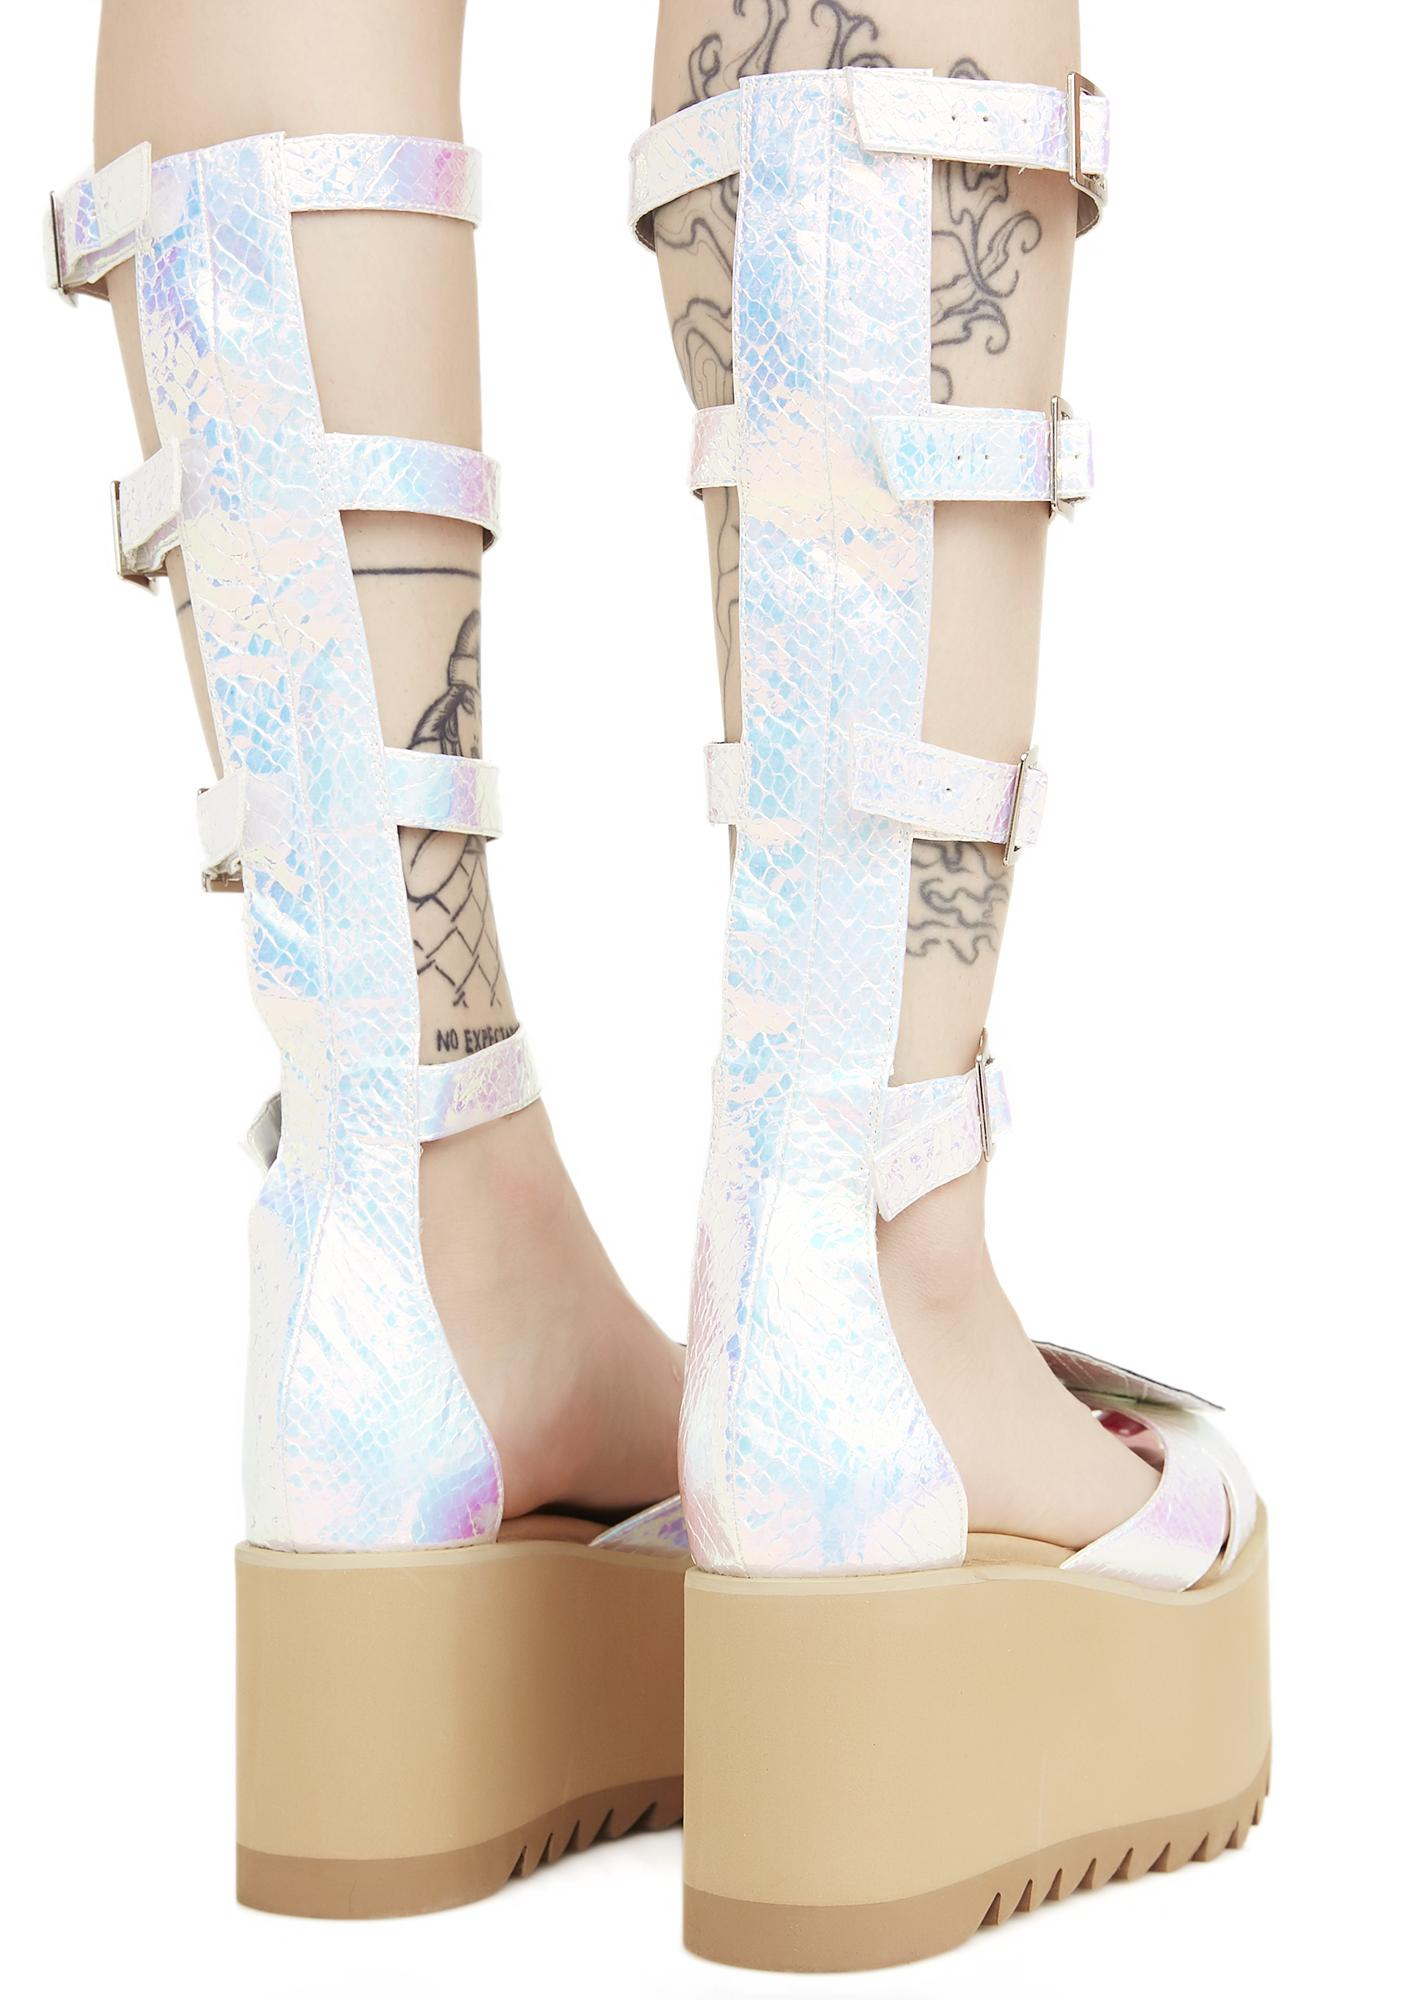 Sugar Thrillz Seadream Gladiator Platforms